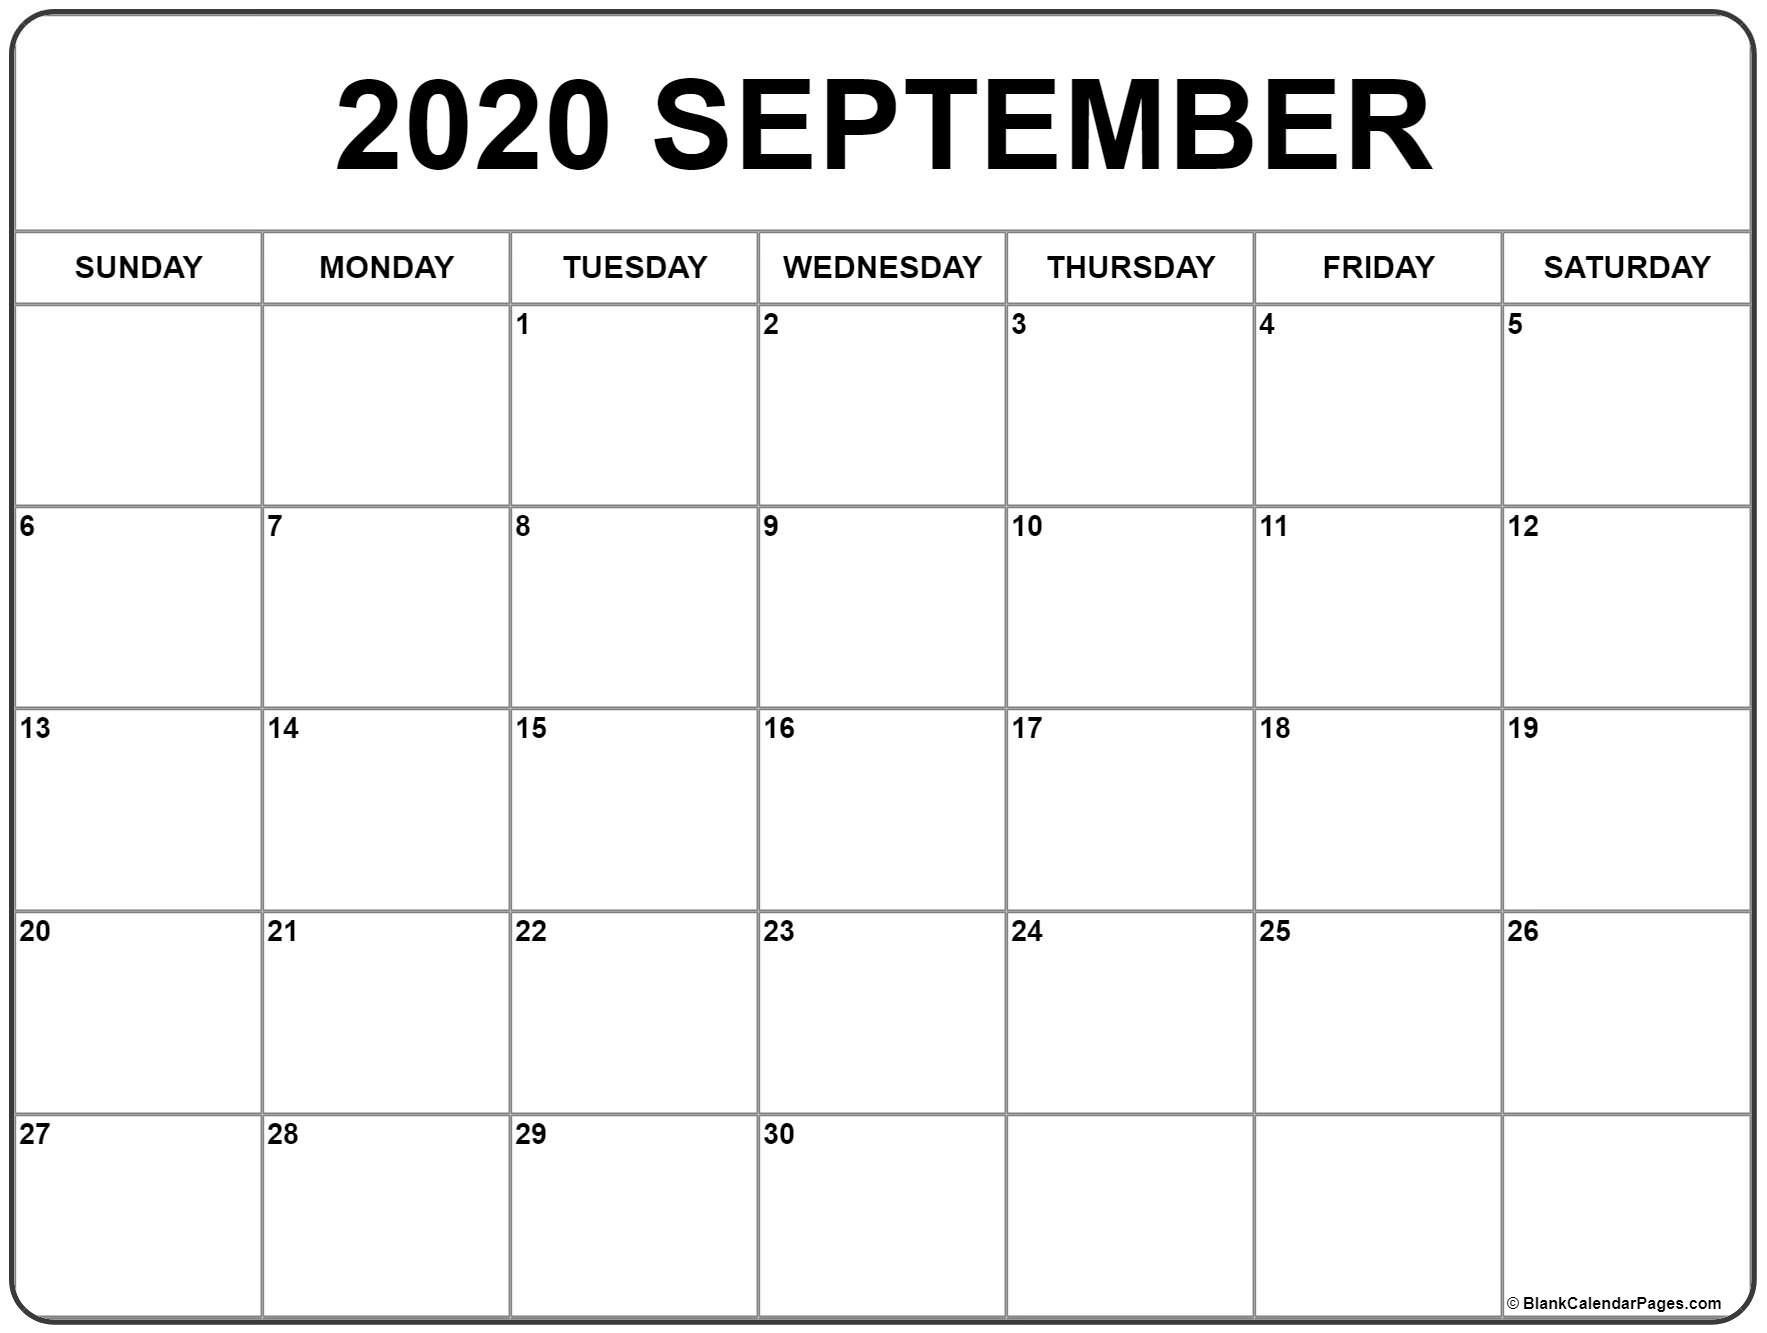 September 2020 Calendar | Free Printable Monthly Calendars_Calendar Blank 2020 September